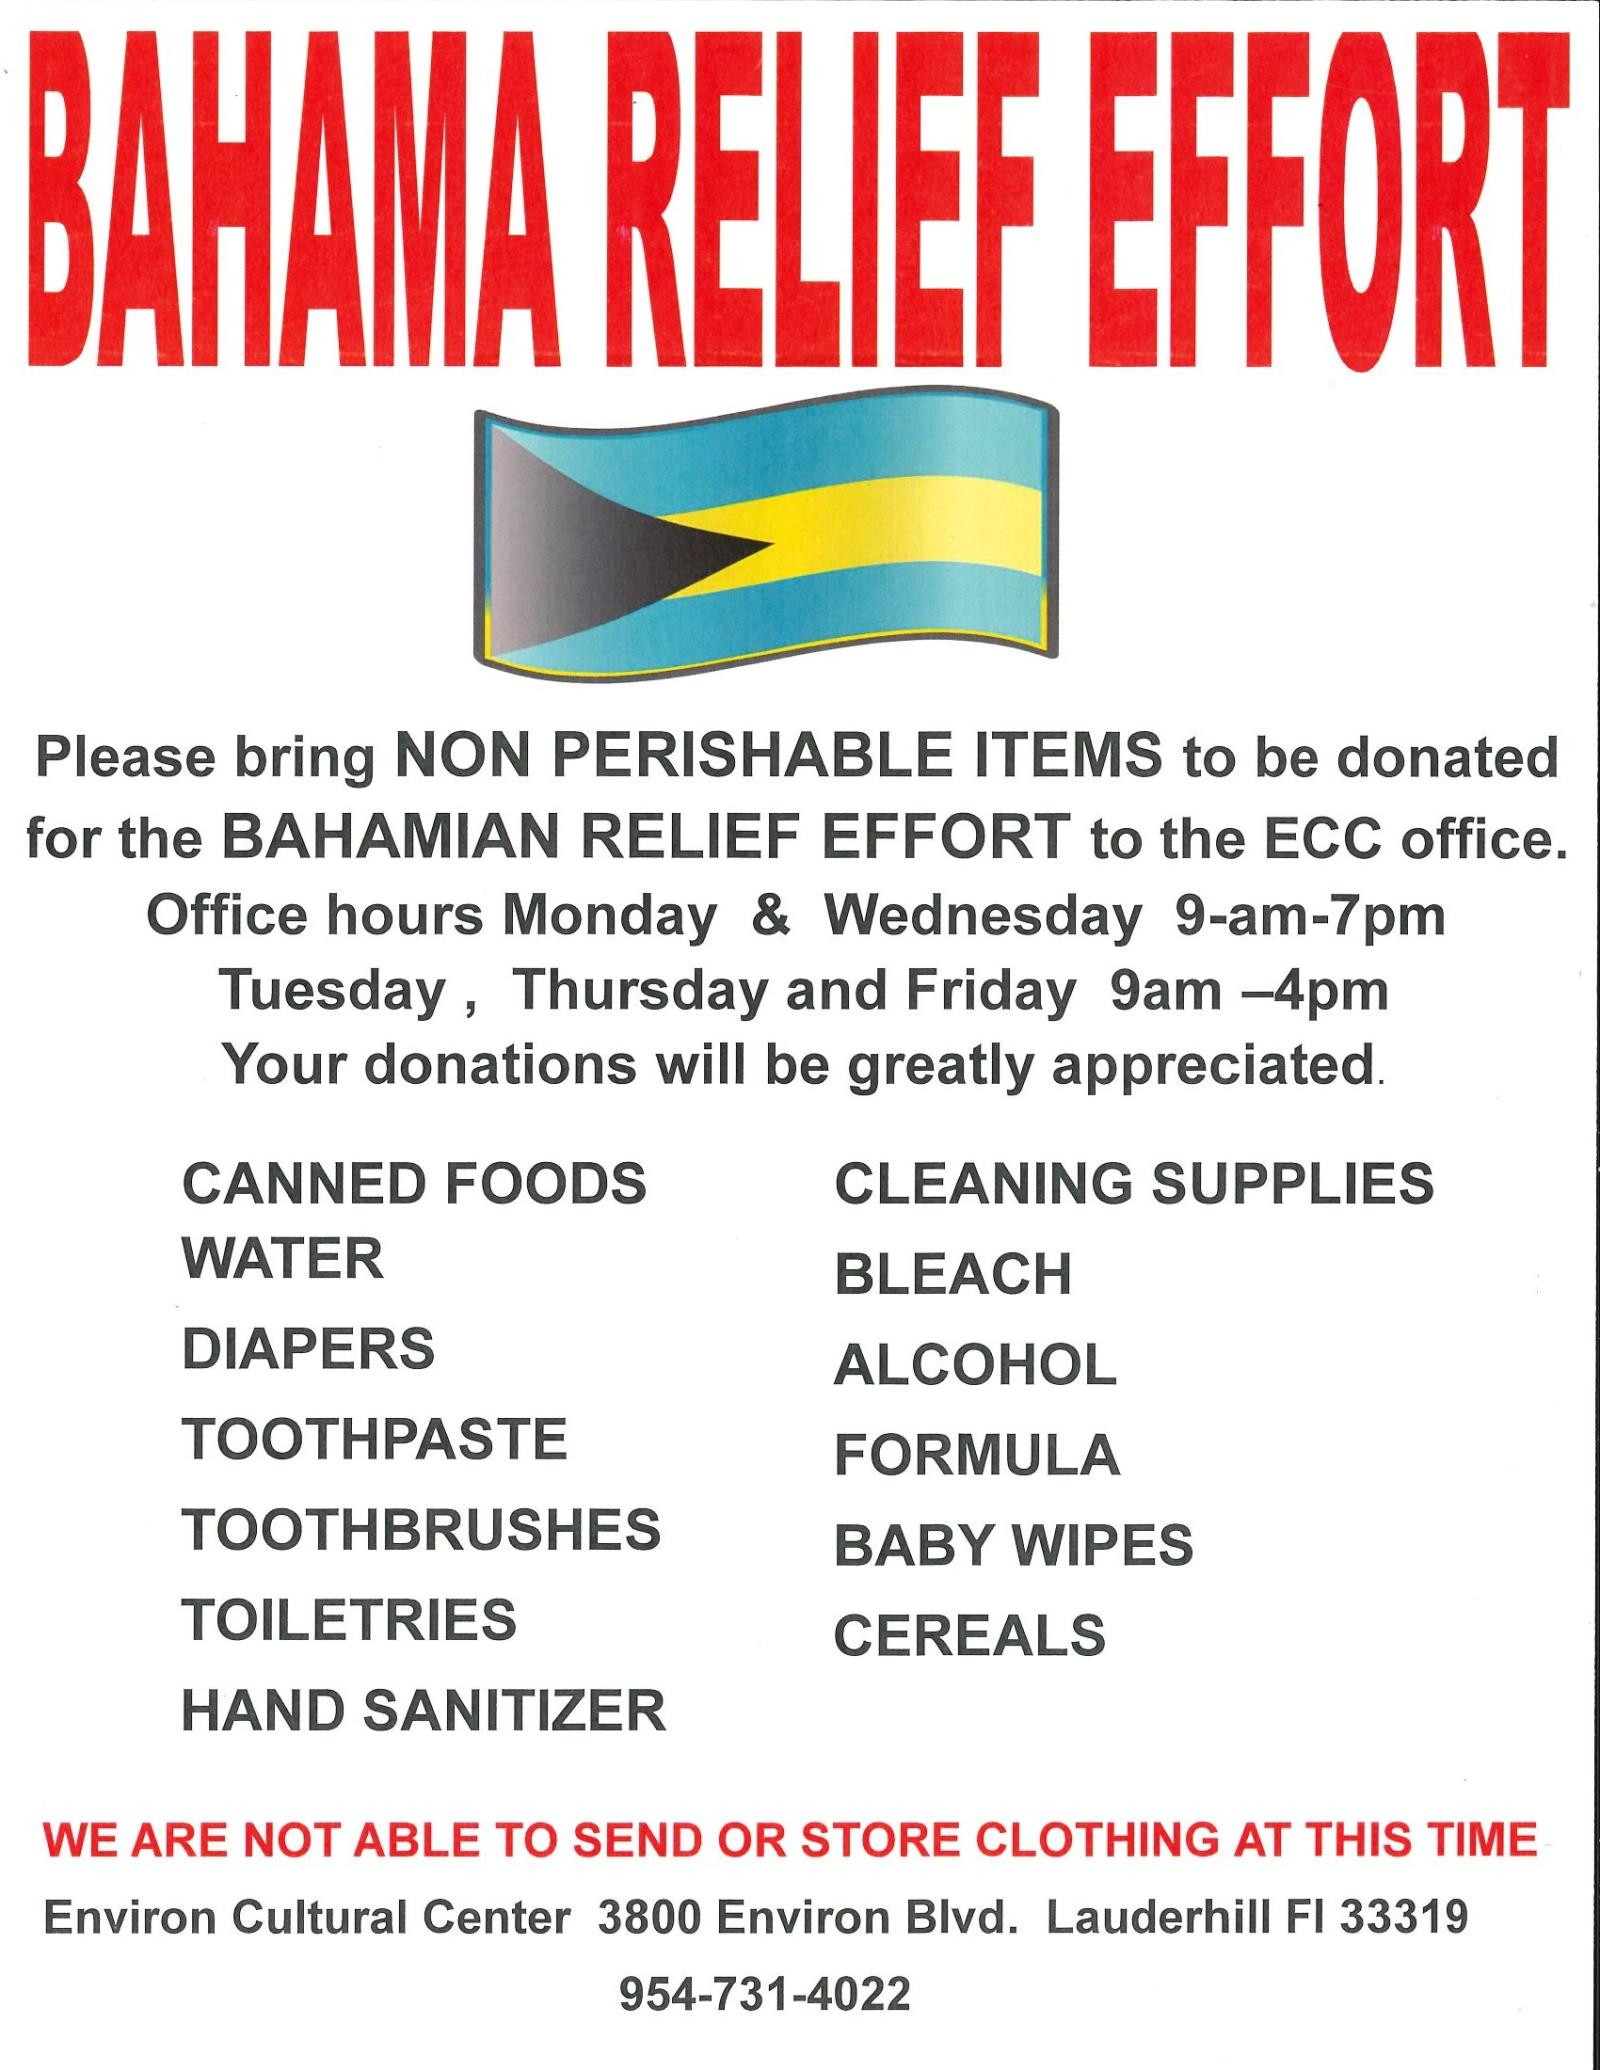 2019 Bahama Relief Effort Flyer - Environ Cultural Center Information